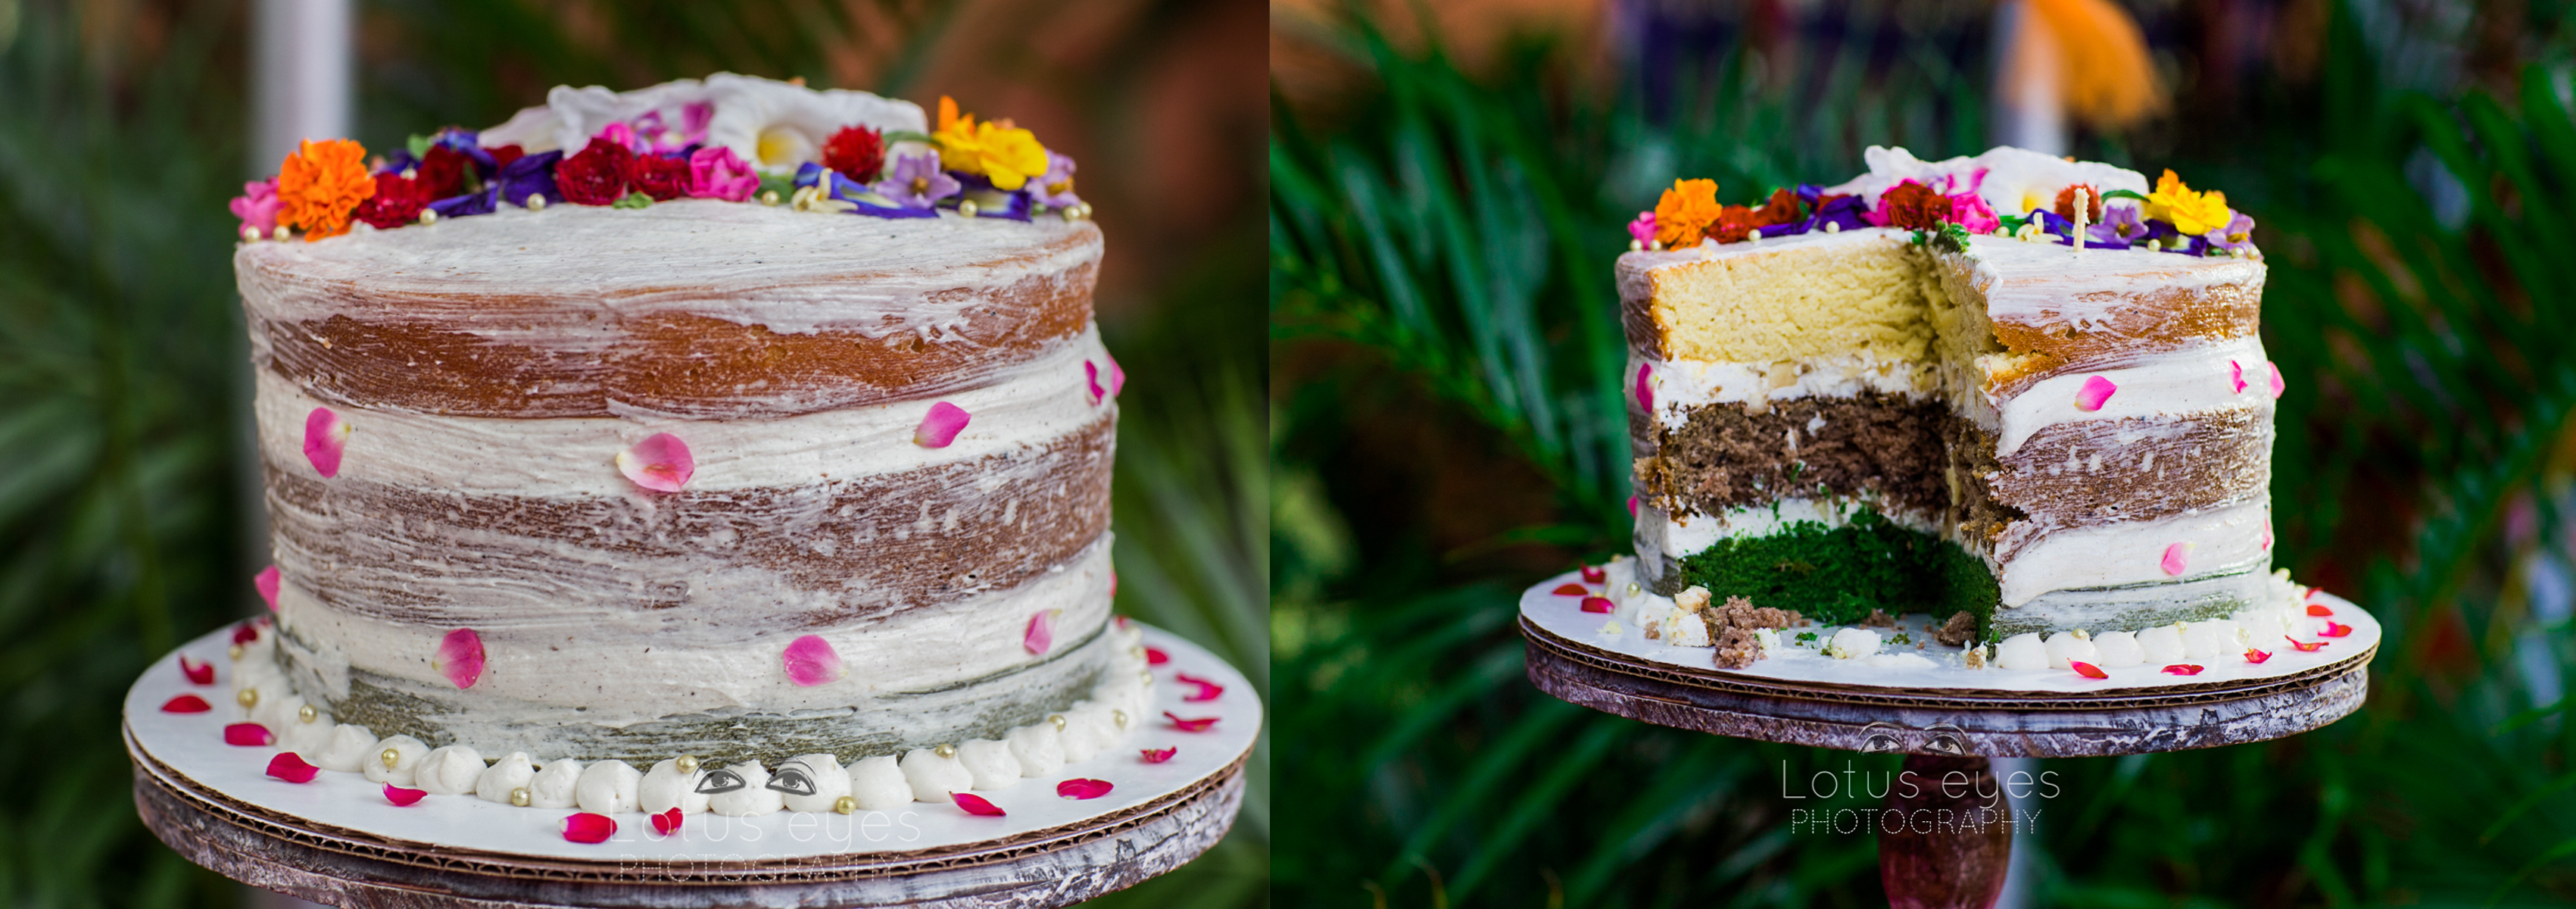 vegan wedding cakes orlando fl radhika and vakesvara s miami indian vedic weddingorlando 21568